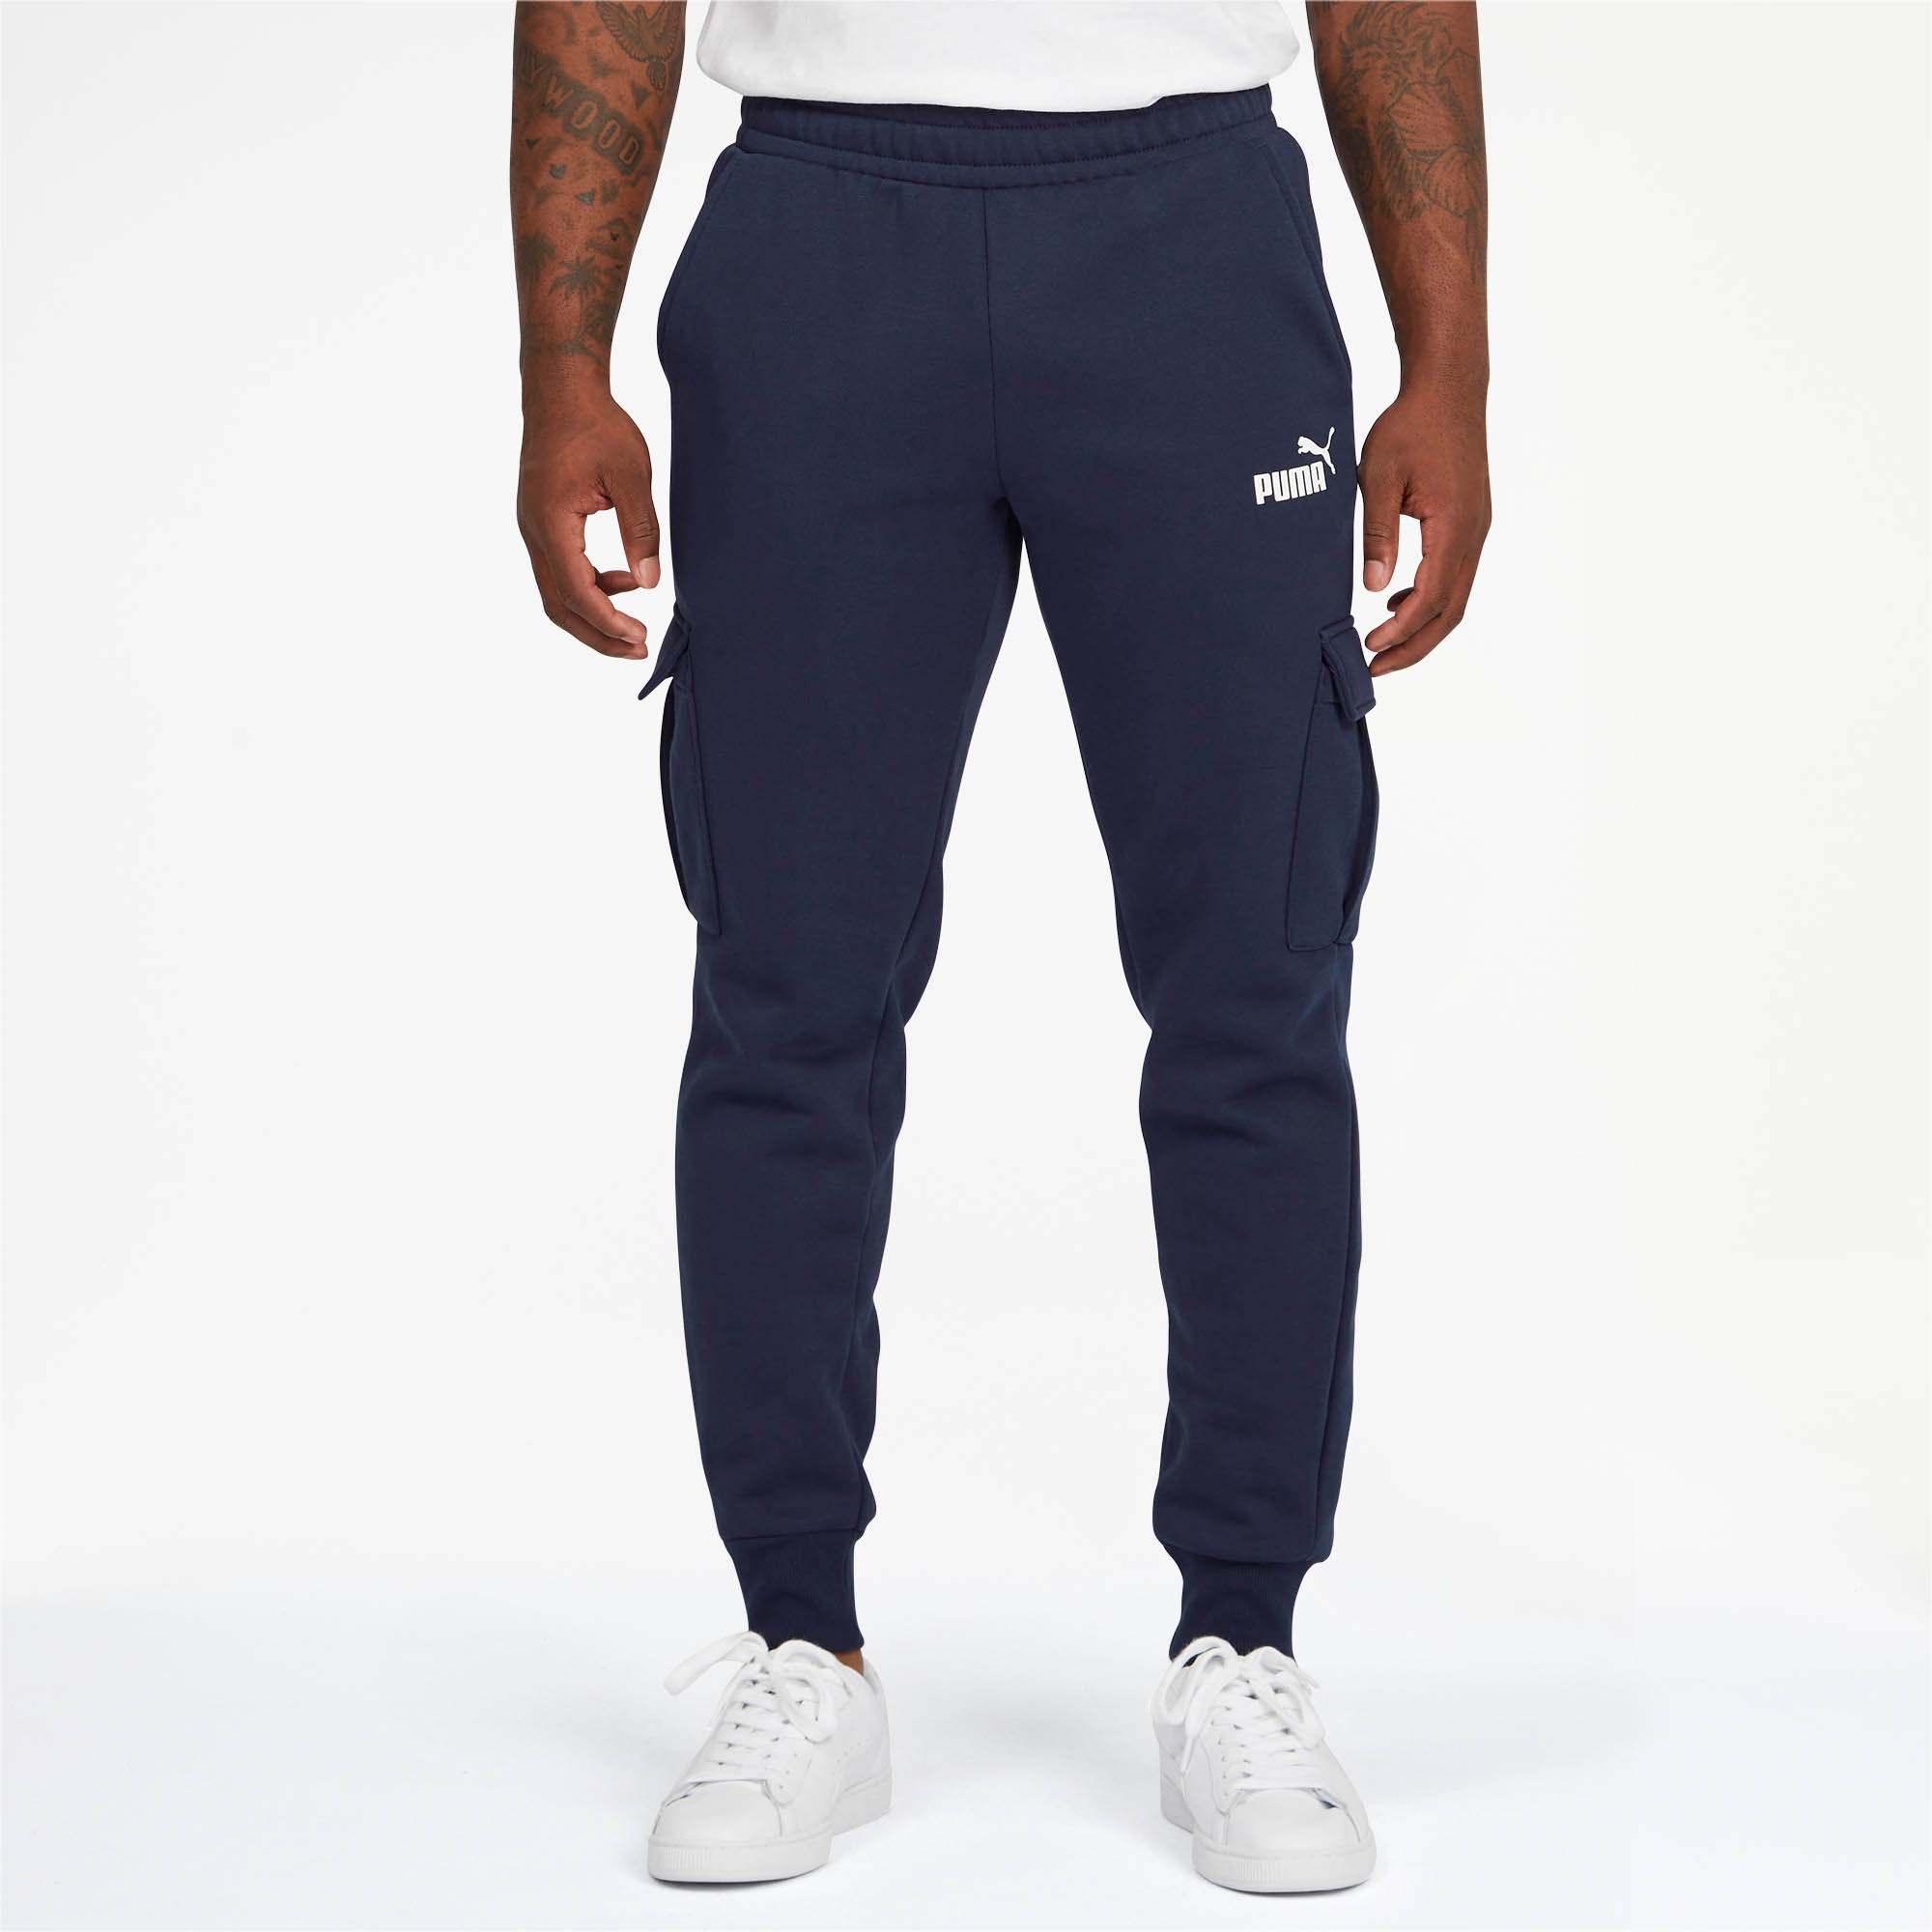 PUMA-Essentials-Men-039-s-Pocket-Pants-Men-Knitted-Pants-Basics thumbnail 9